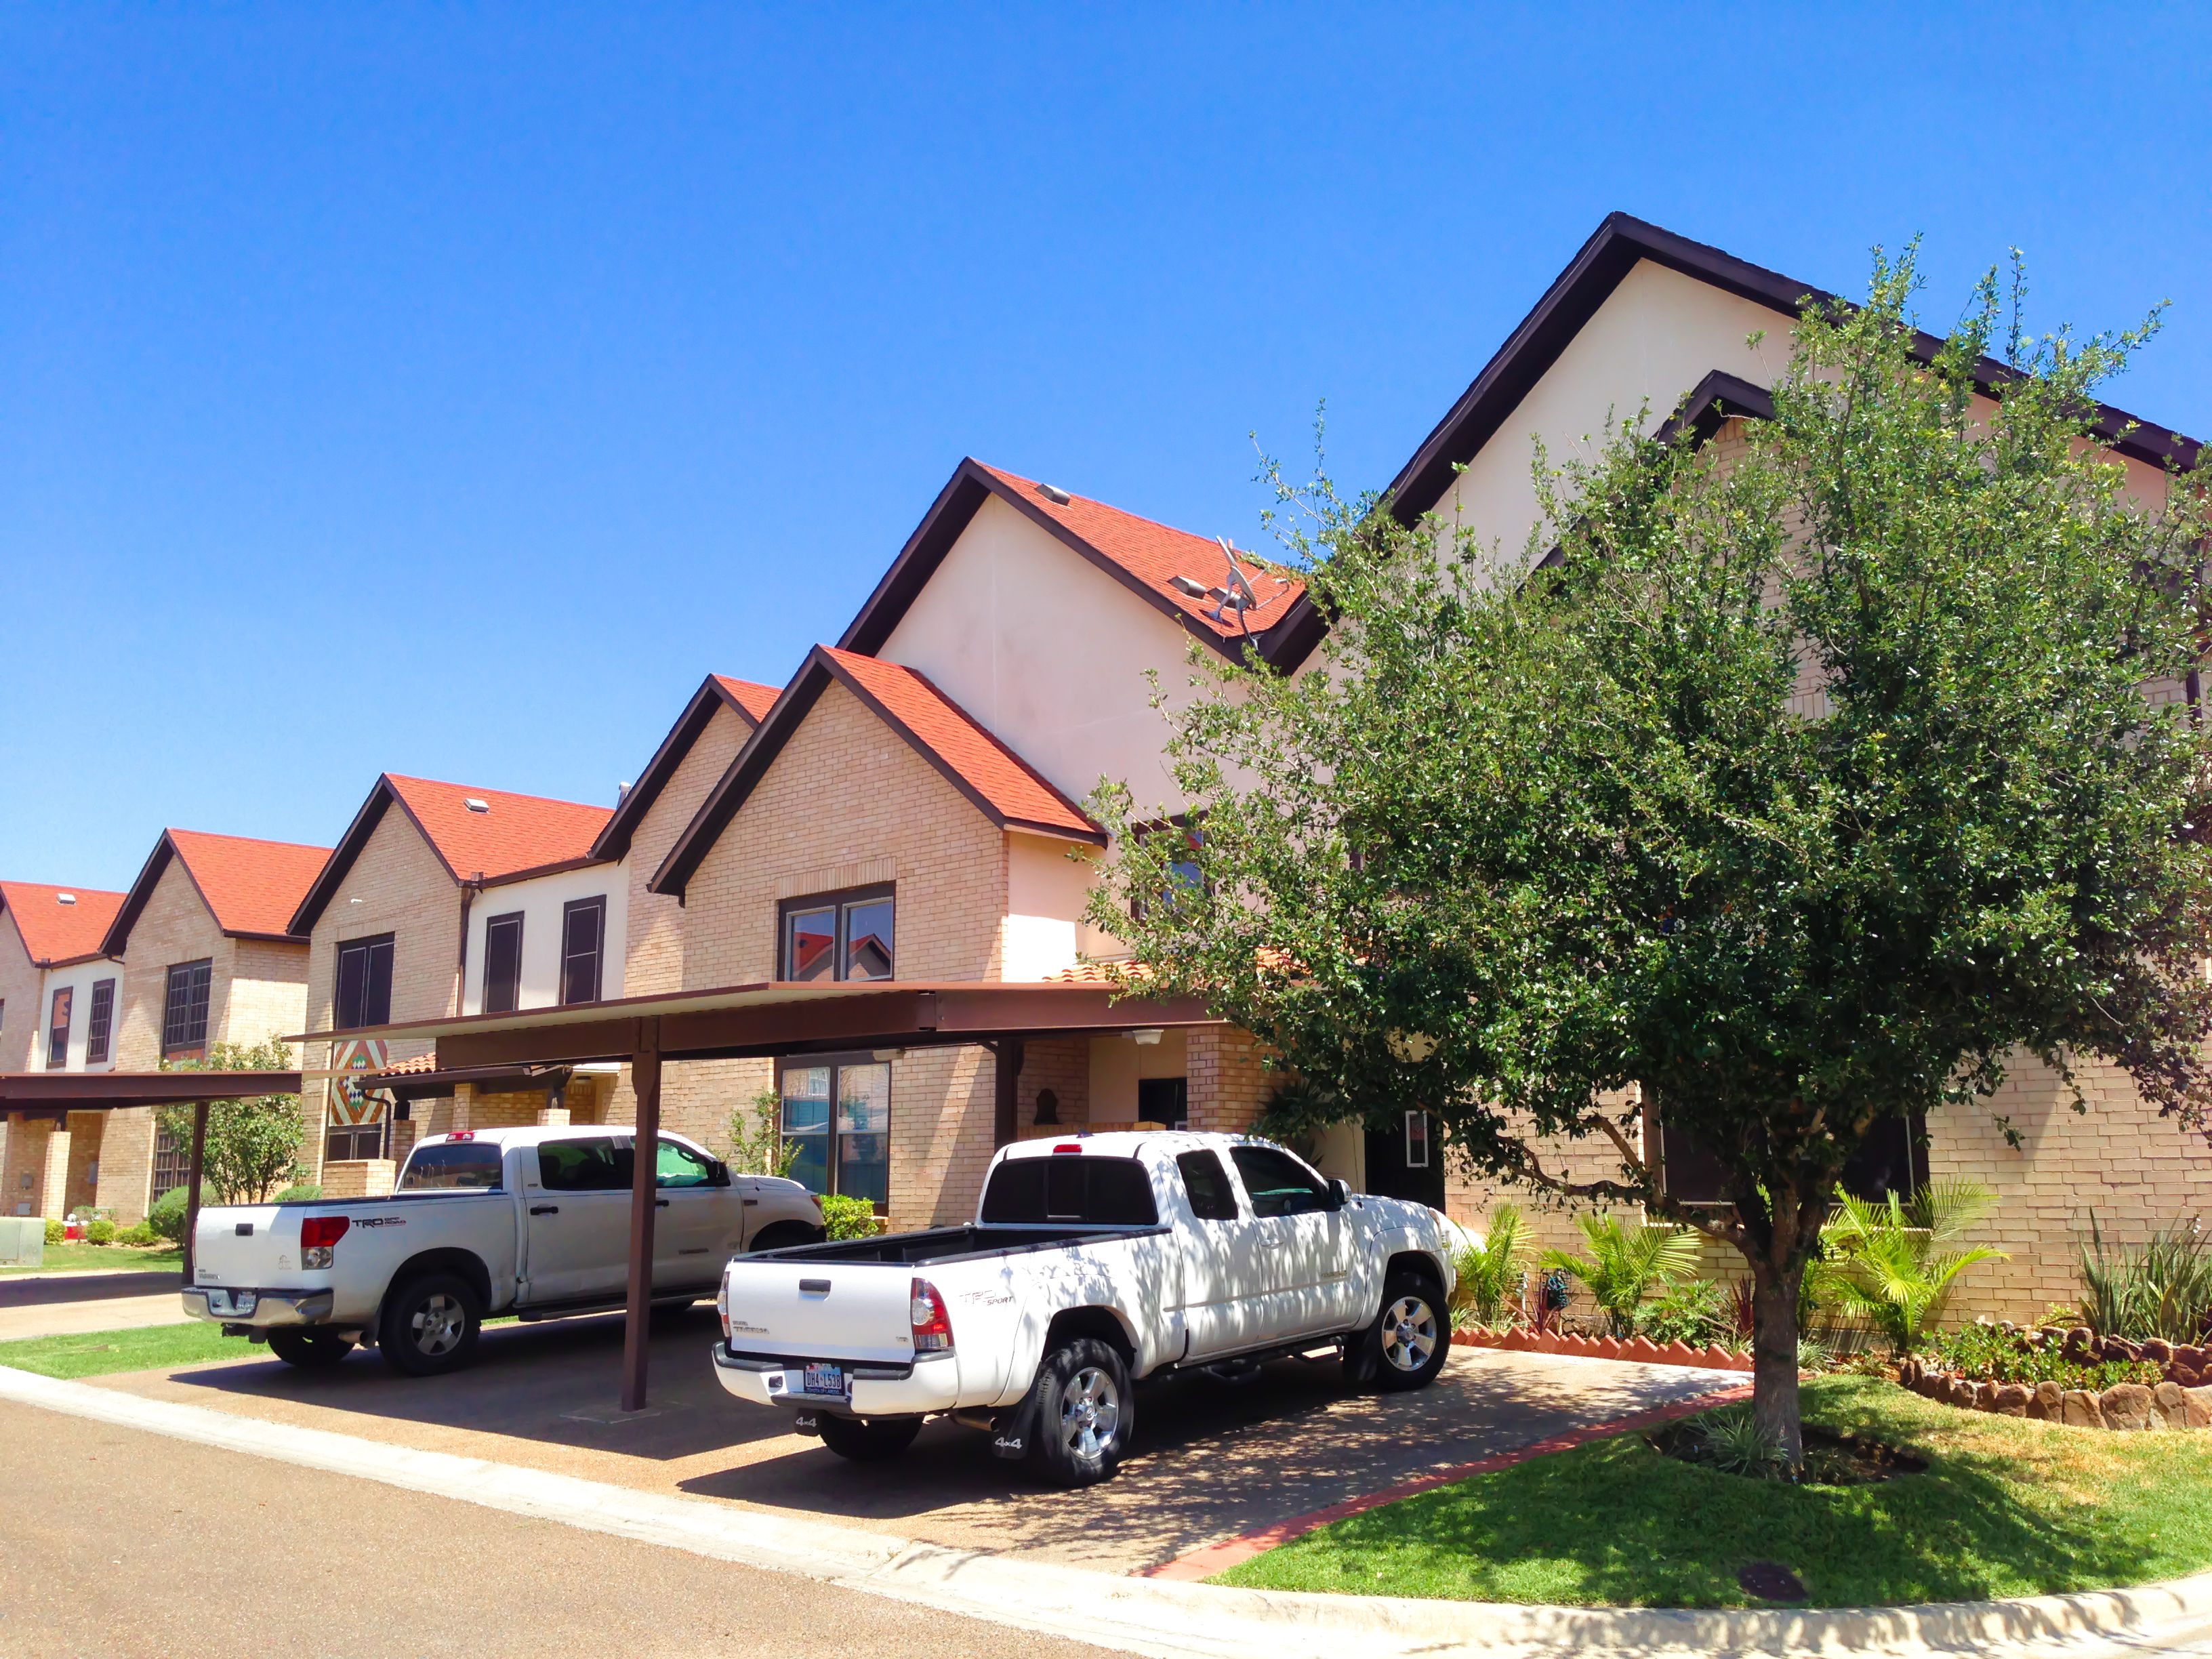 MONARCH TOWNHOMES